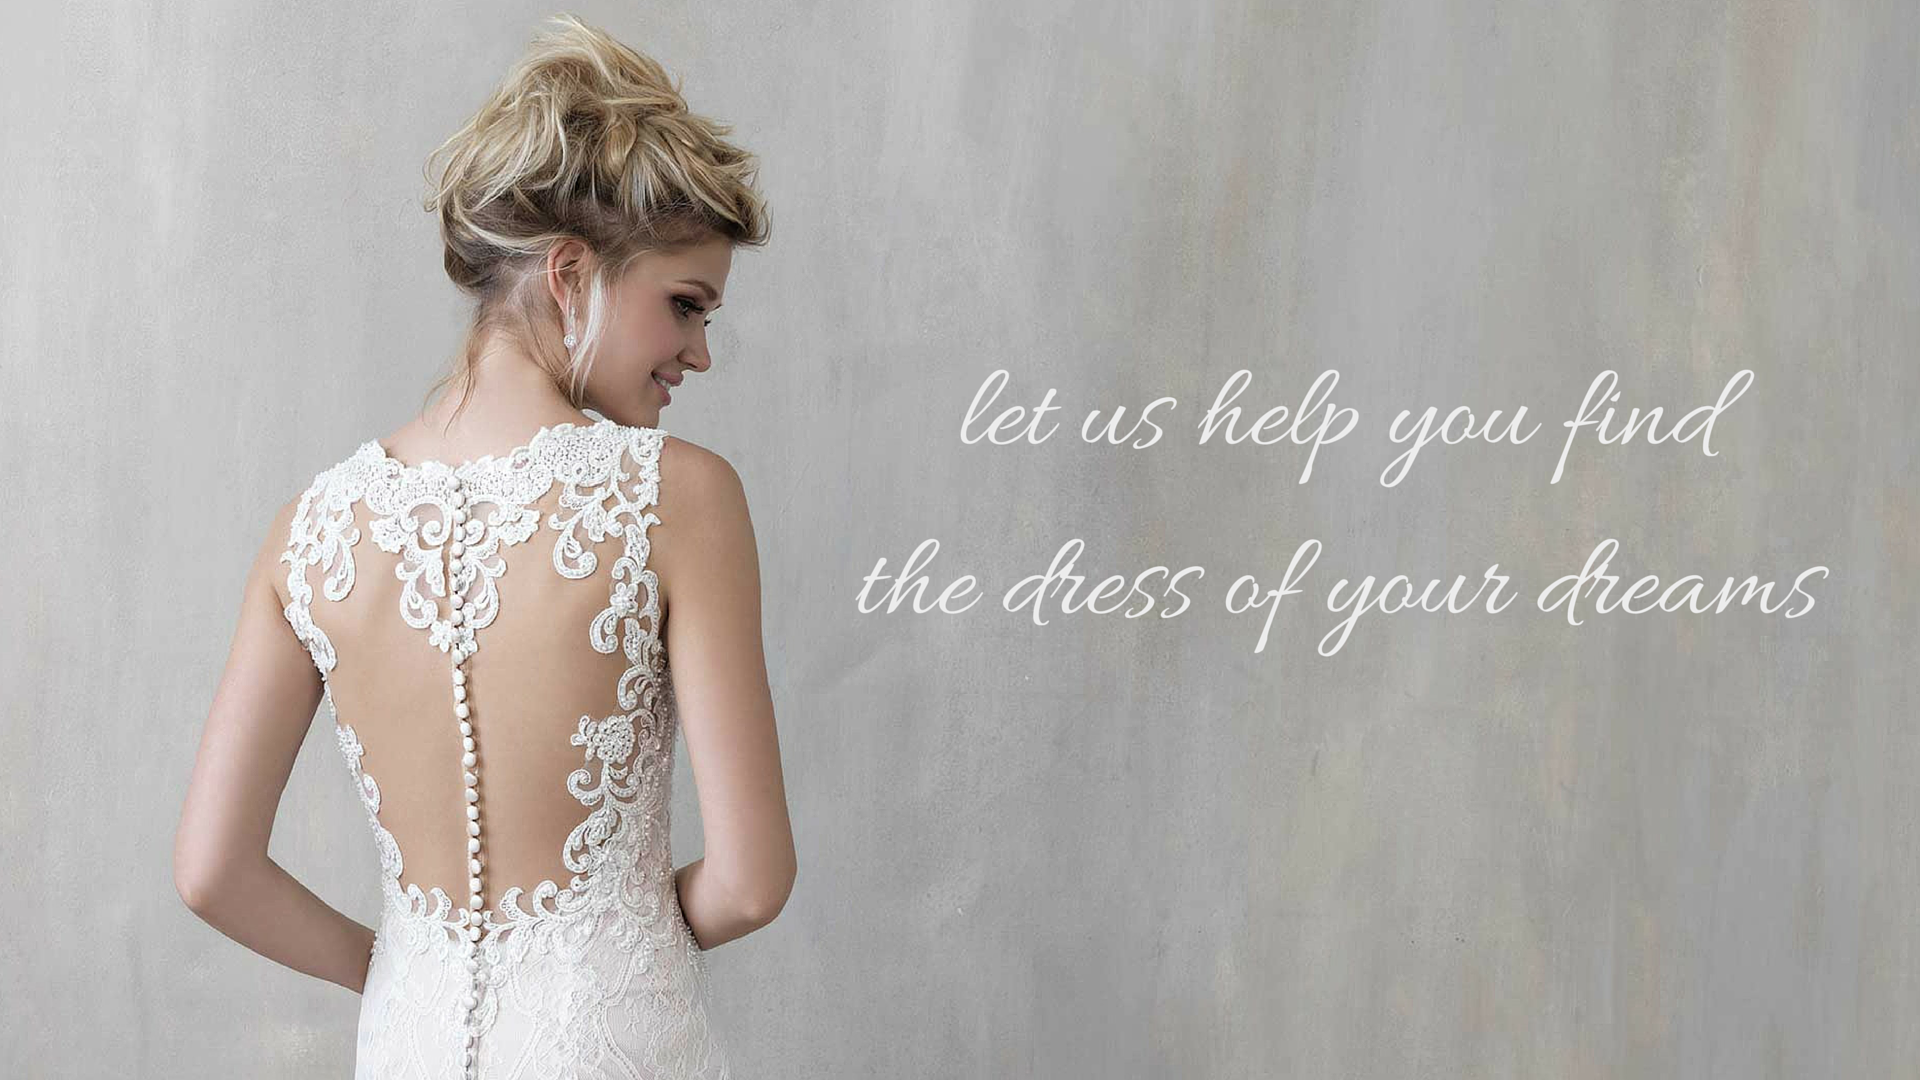 let-us-help-you-find-the-dress-of-your-dreams